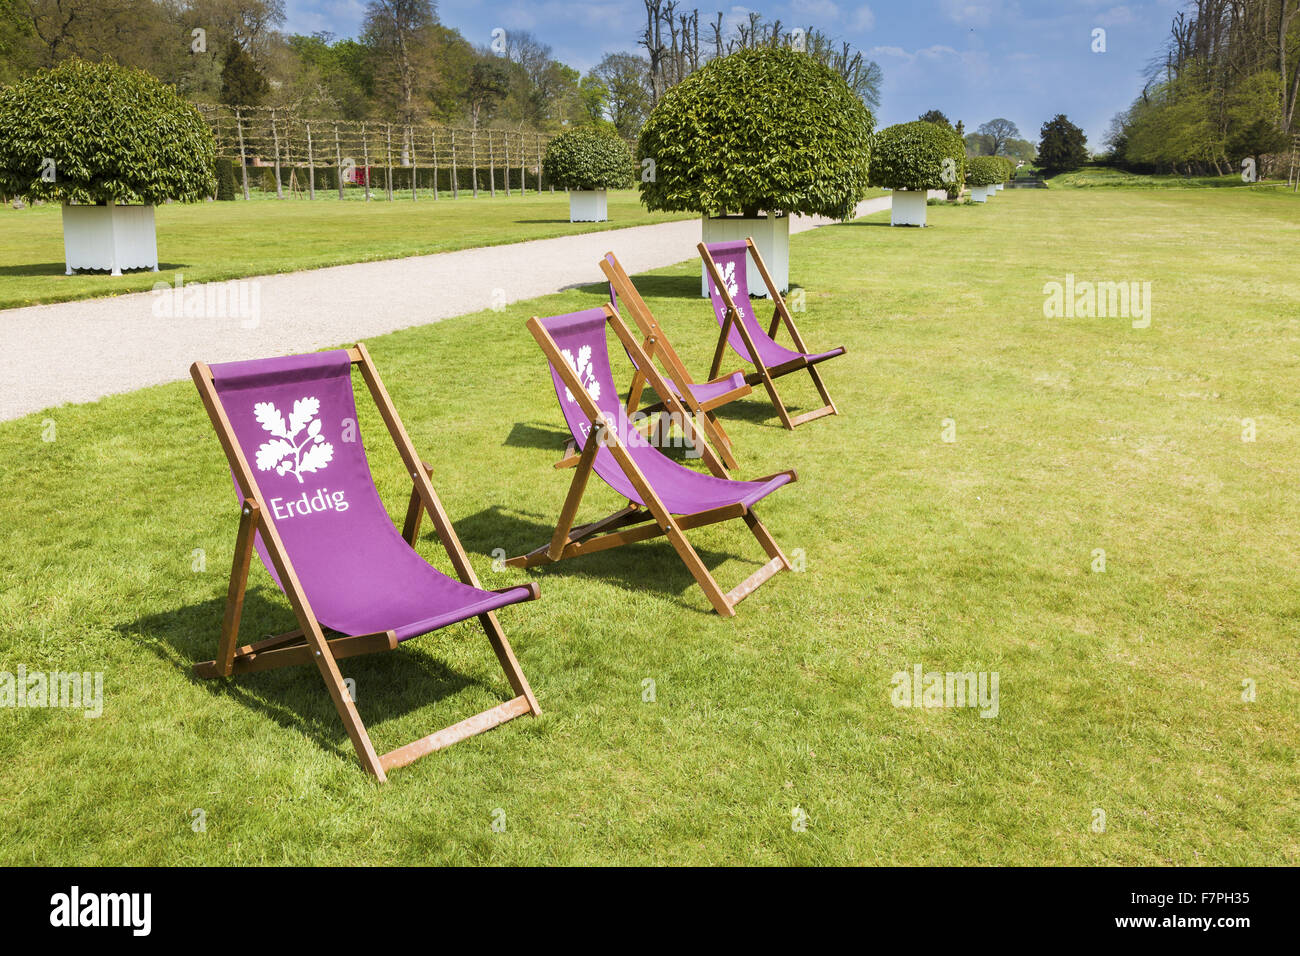 National Trust deckchairs on the lawn in the gardens of Erddig